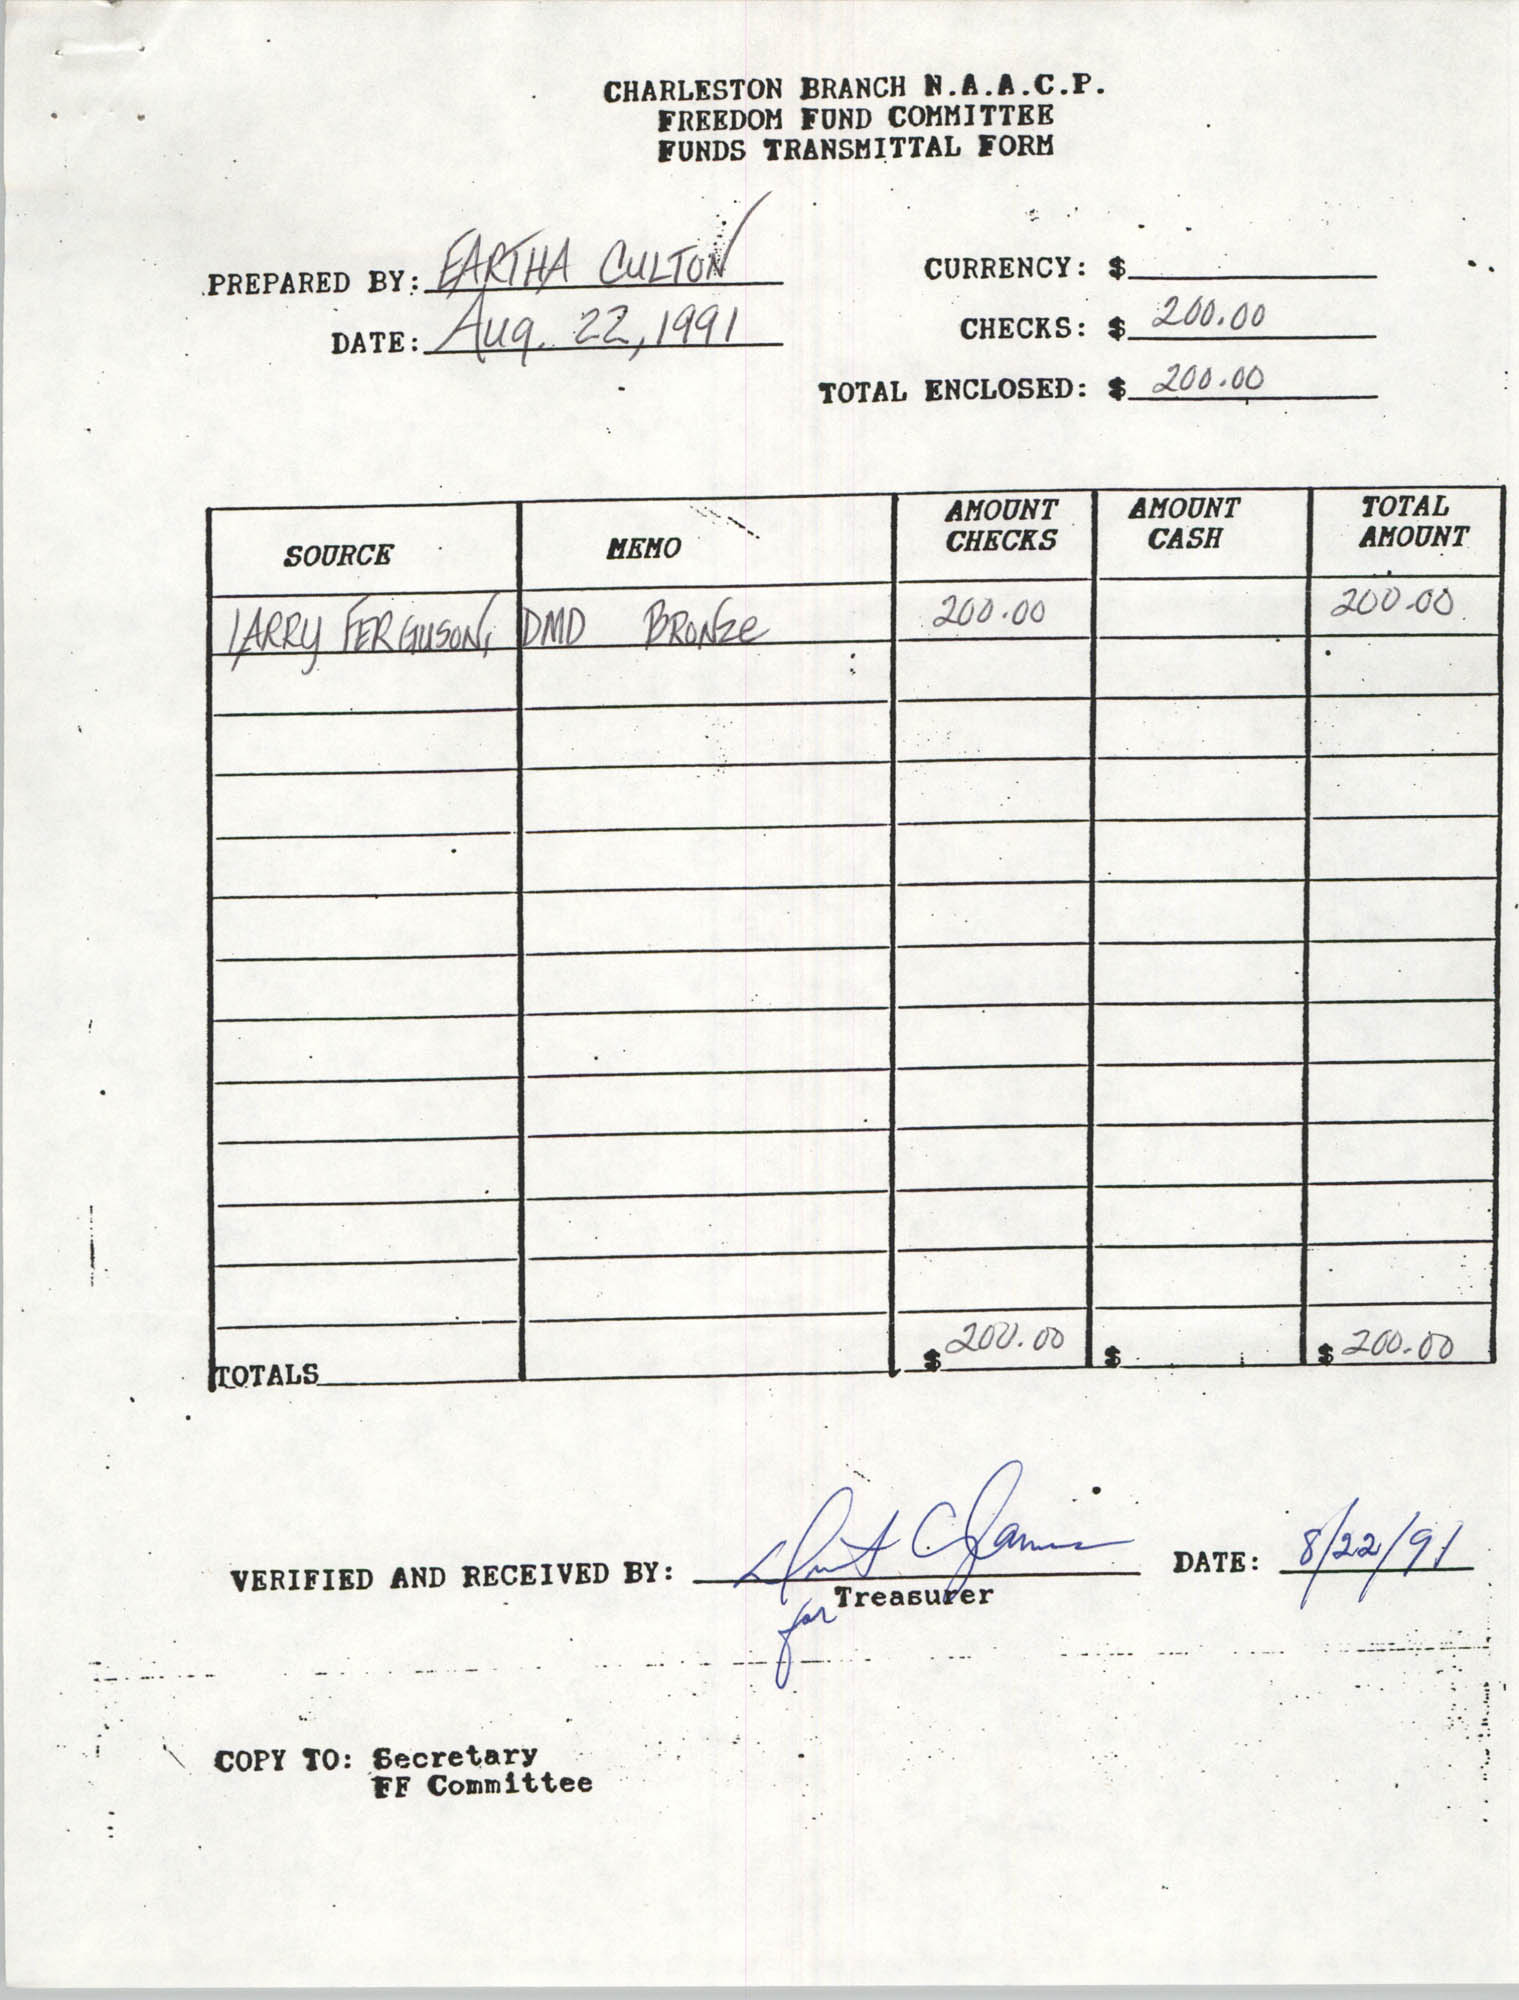 Charleston Branch of the NAACP Funds Transmittal Forms, August 1991, Page 24